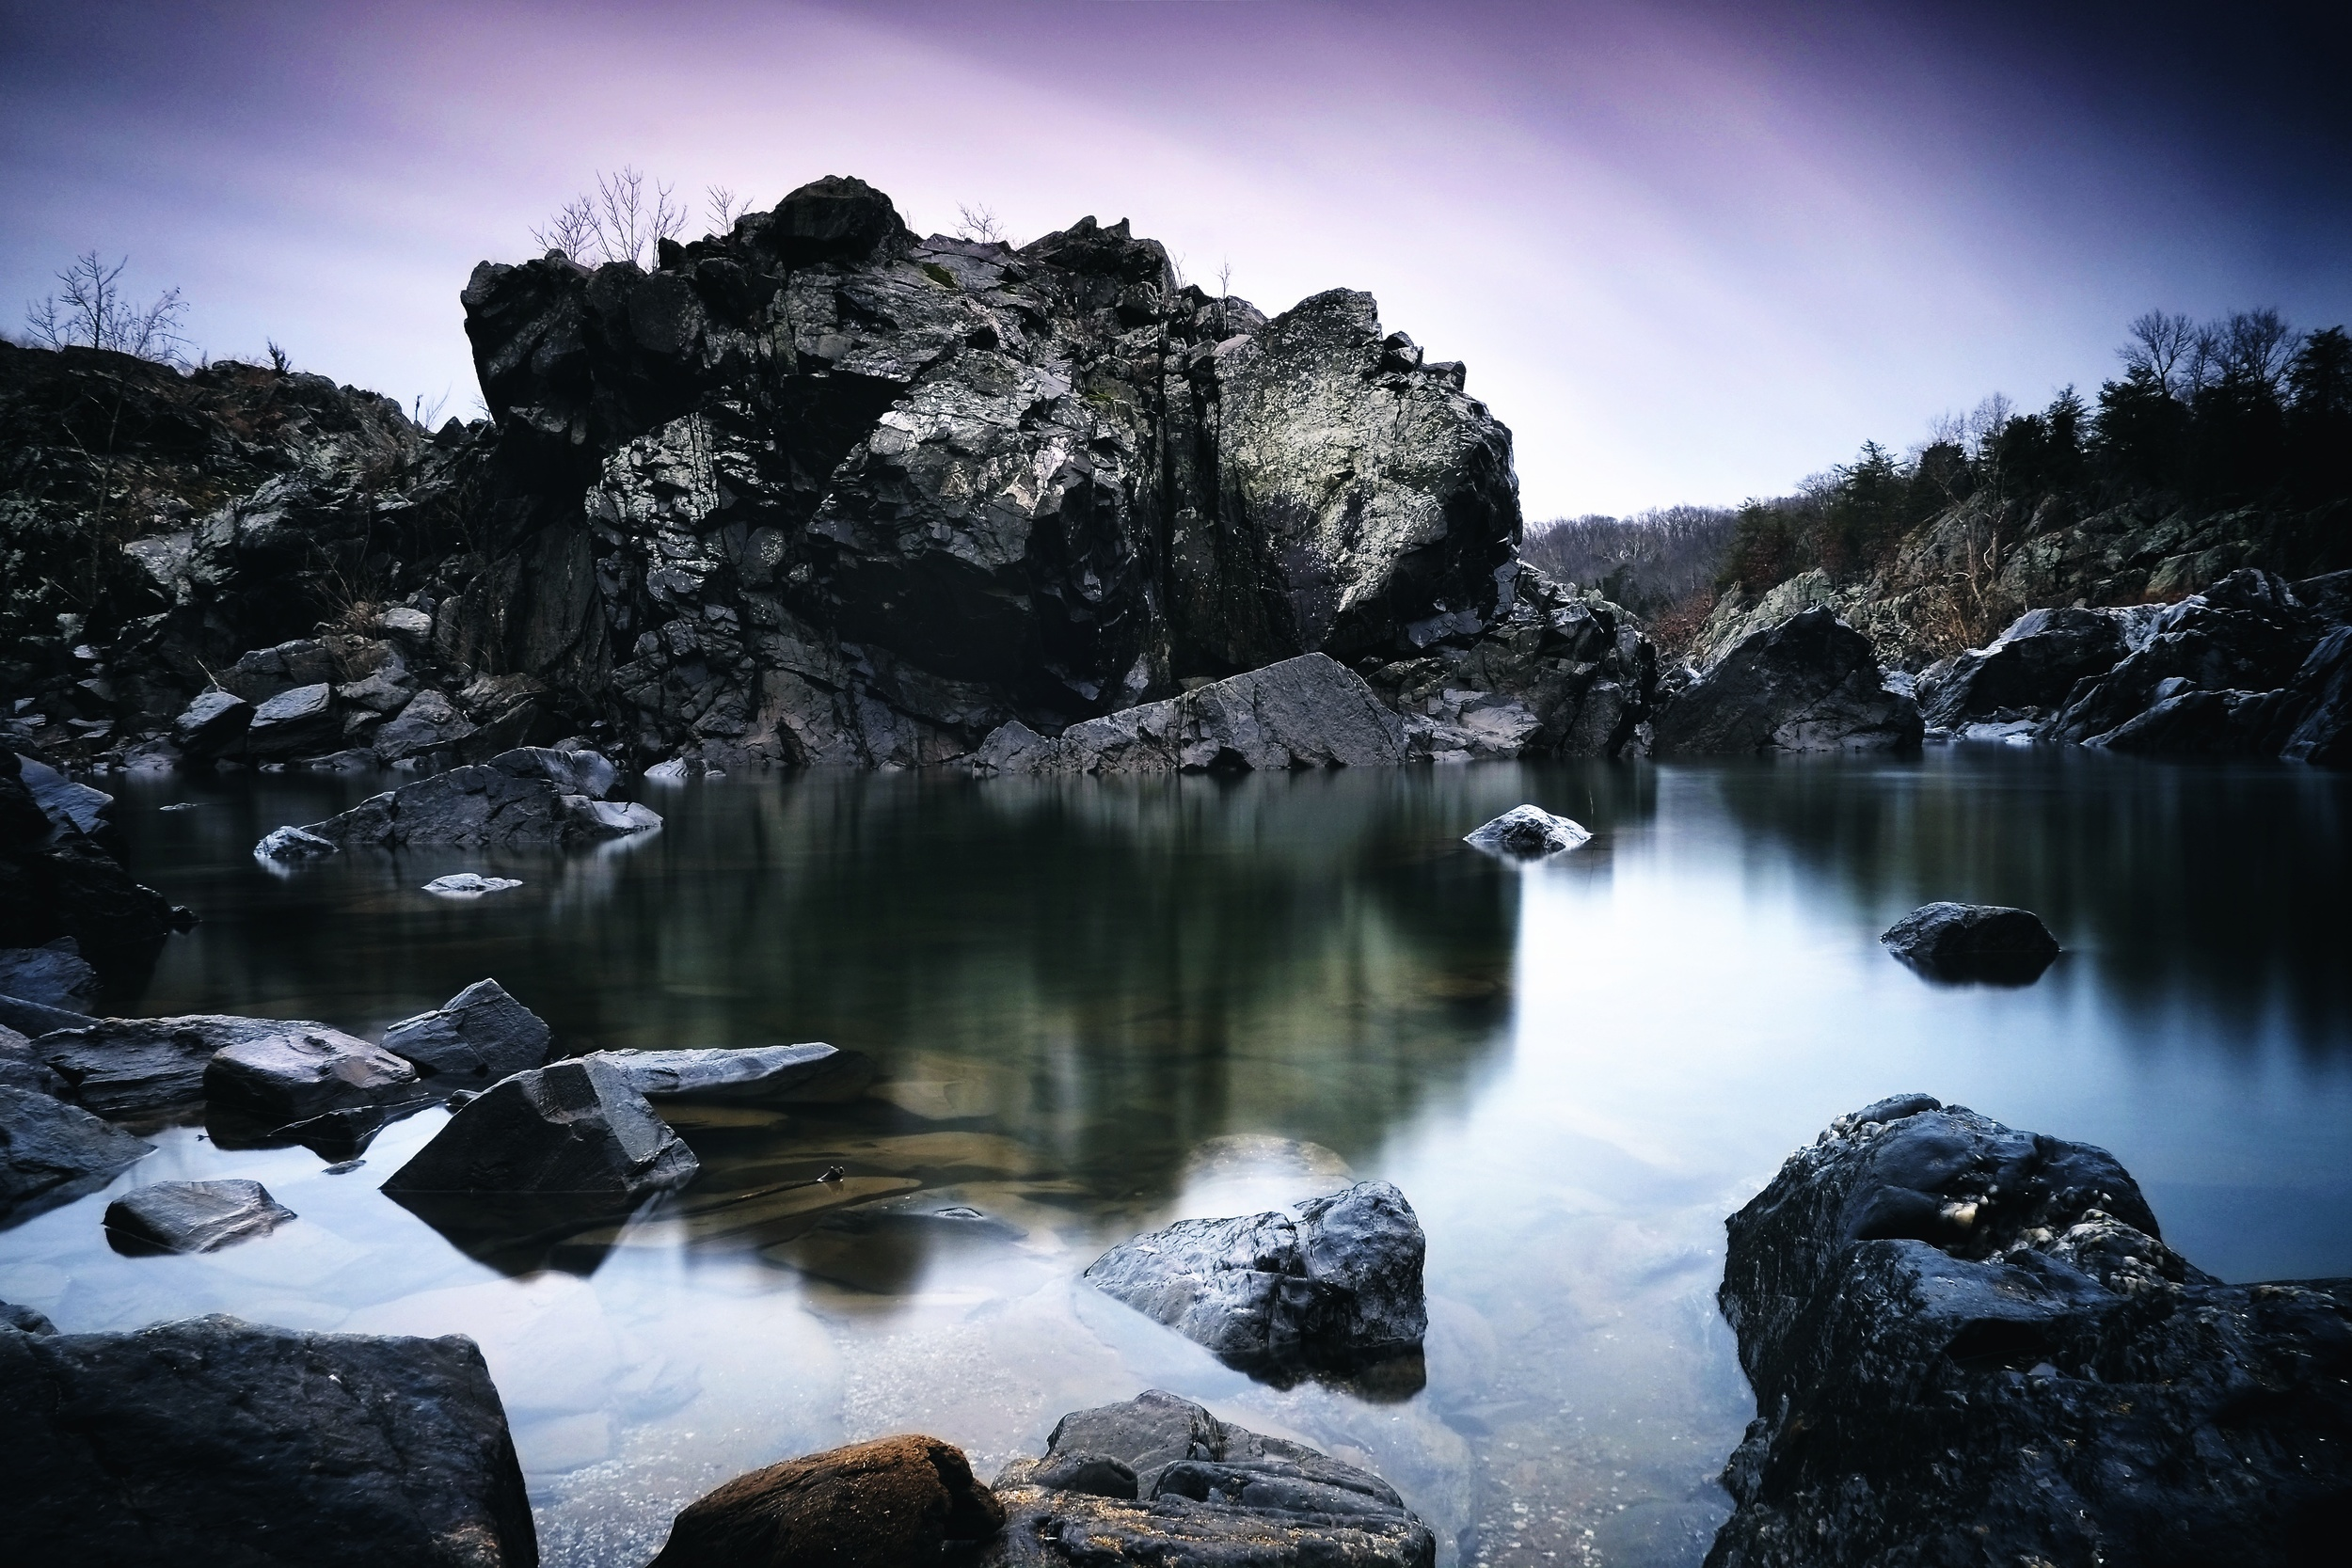 EXIF : ISO 200, f11, 17 seconds @ 18mm.  Filters : Big stopper + .6 Grad ND for sky.  Mid-mourning, cloudy day, mostly calm water.